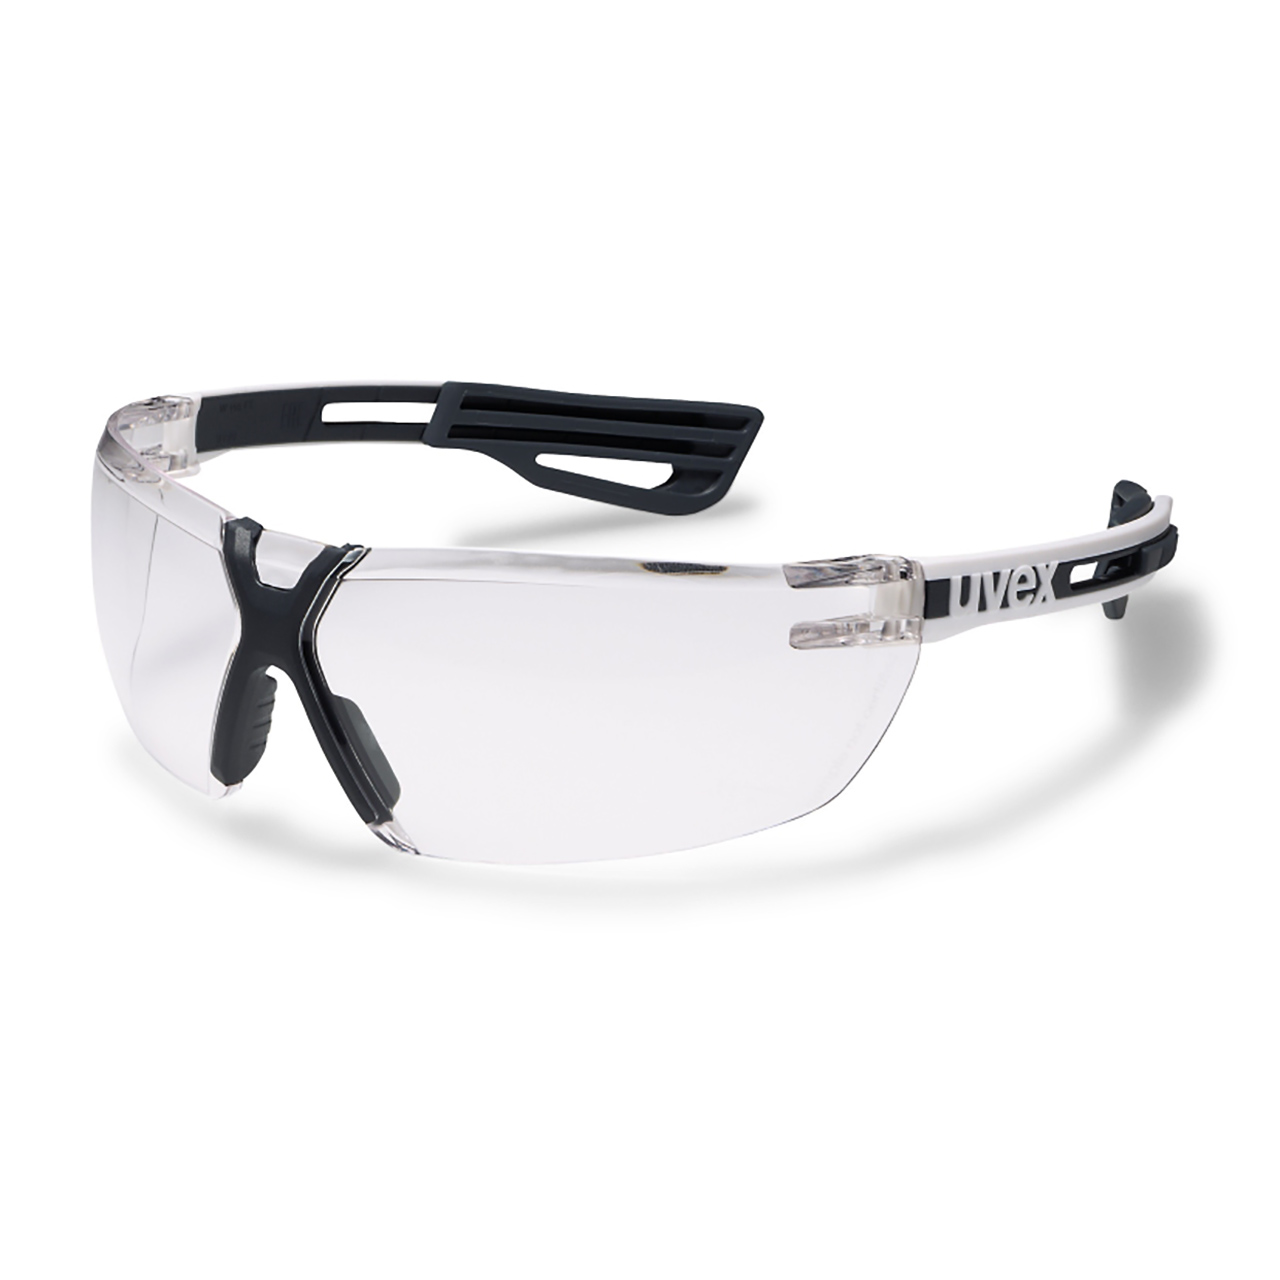 ea6790833822 uvex Safety Glasses